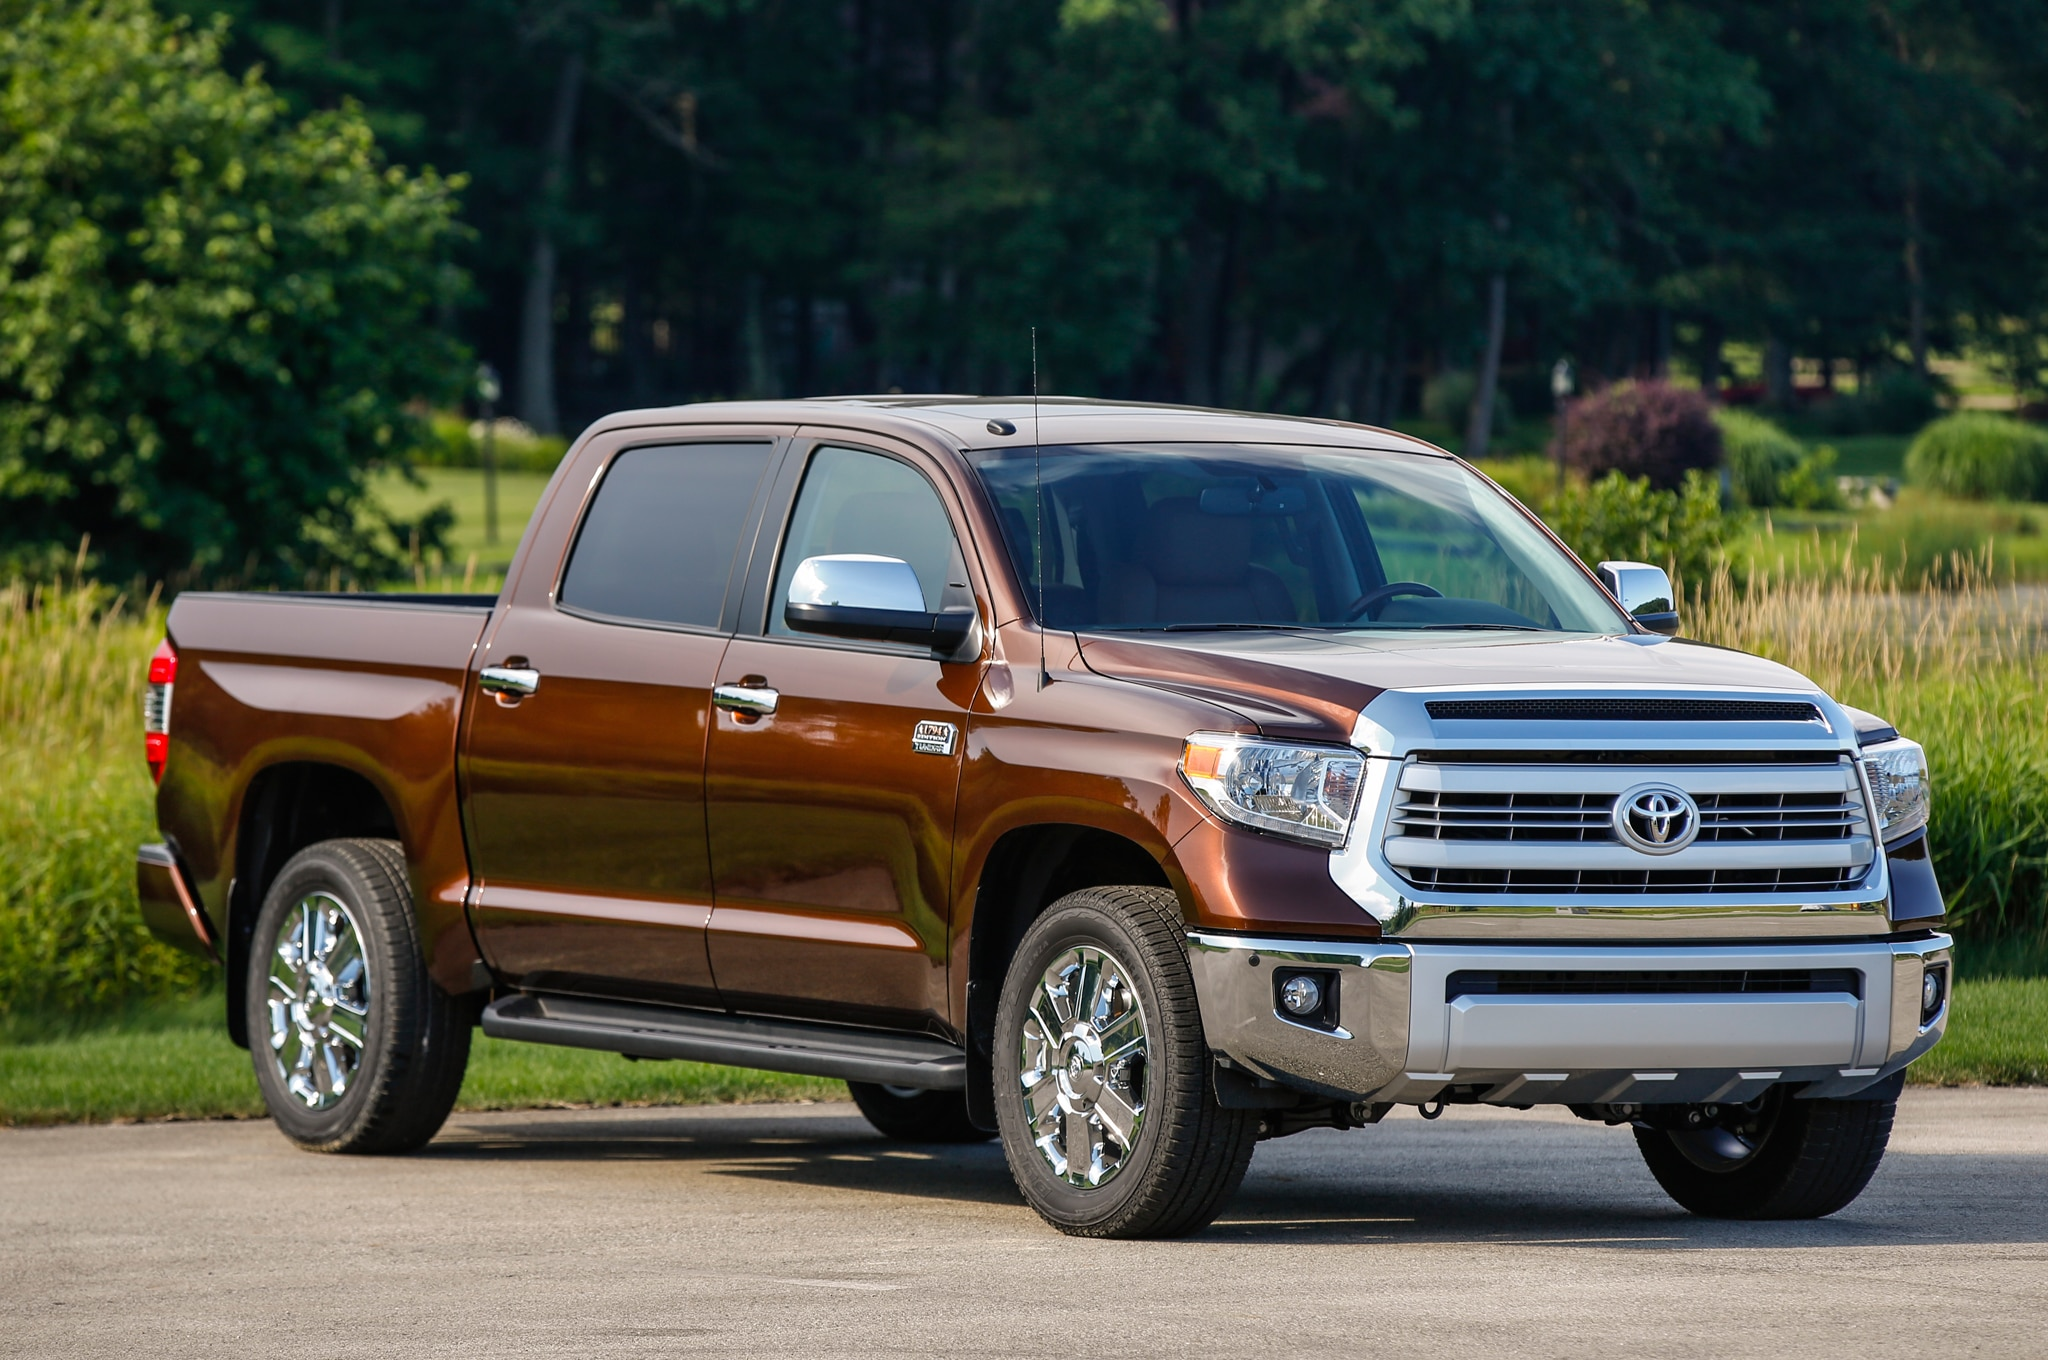 1794 Toyota Tundra >> Toyota TRD Pro Series Introduced for Tundra, Tacoma, 4Runner - Automobile Magazine